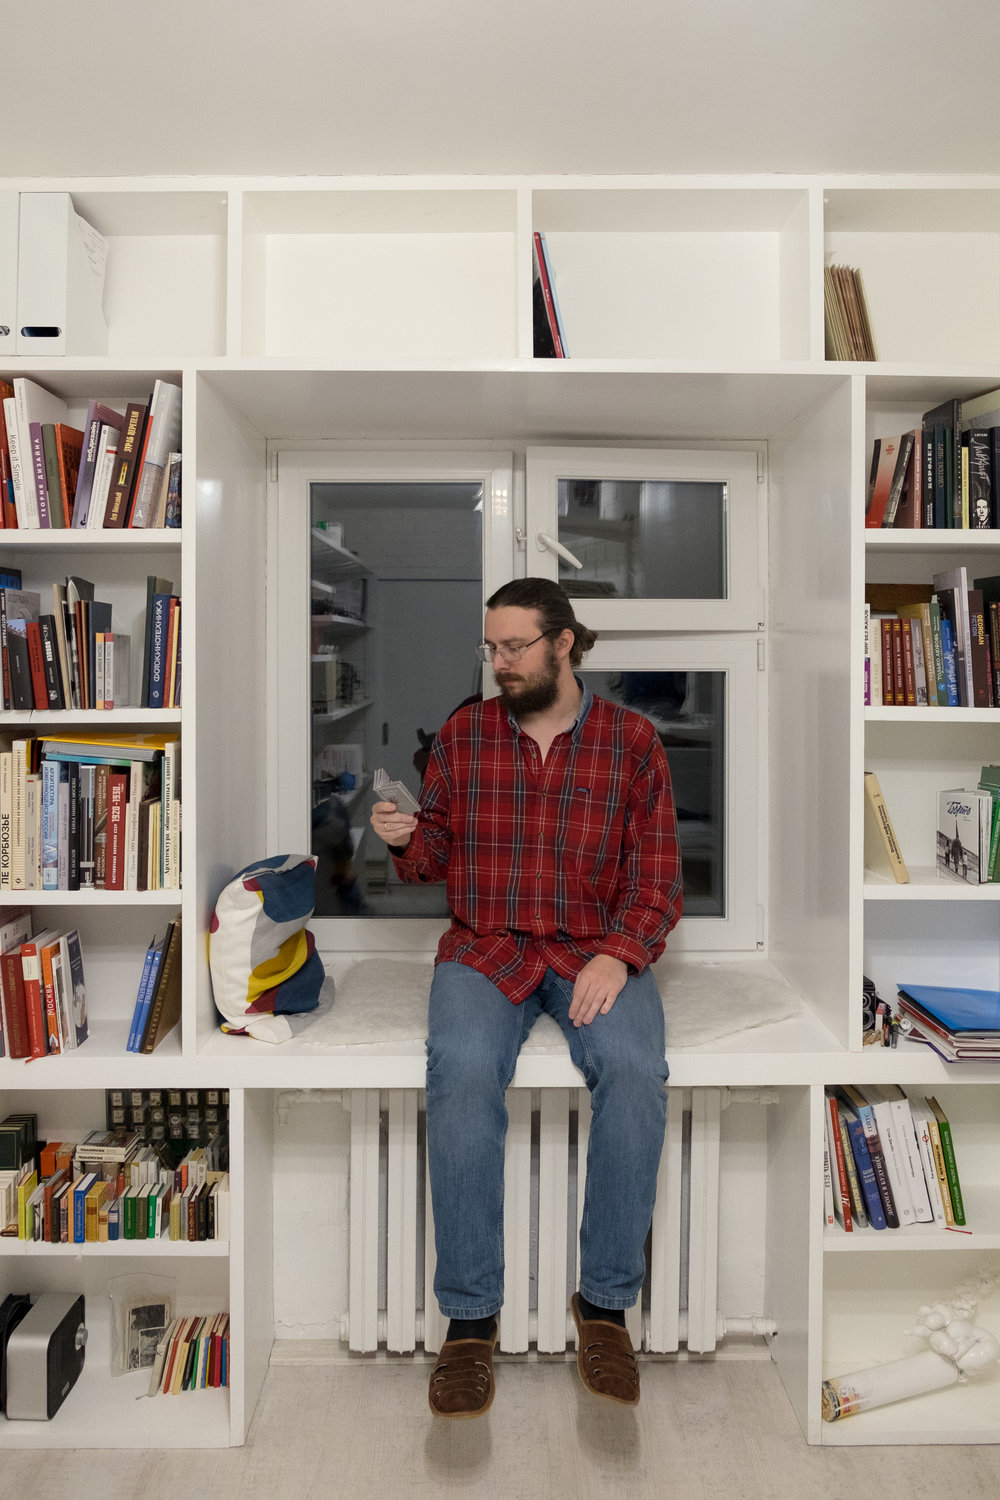 Photographer  Mikhail Emelchenkov  in his home office viewing a miniature photobook